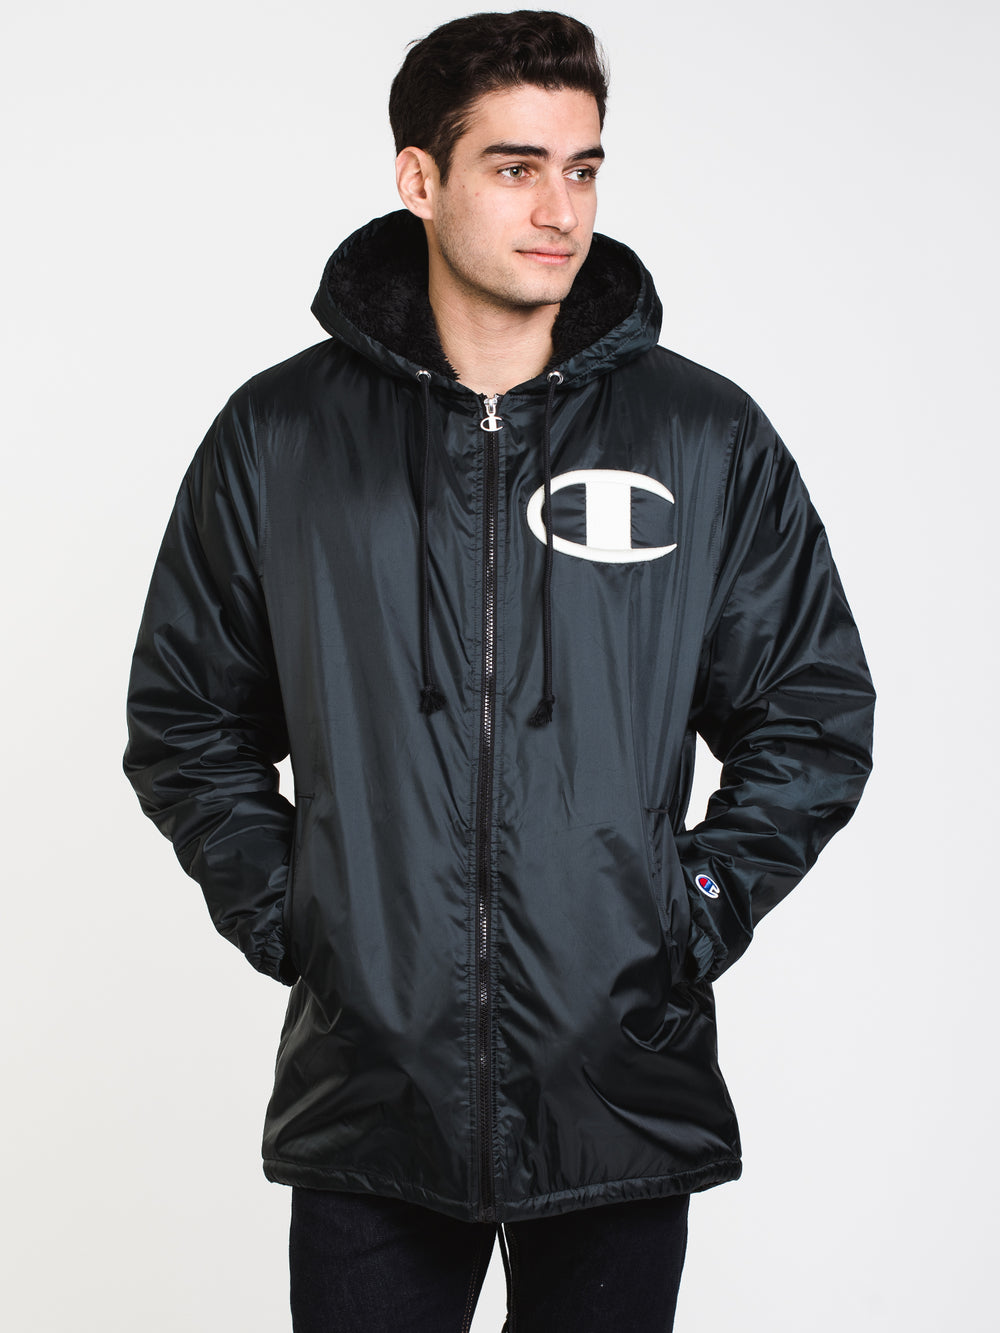 MENS SHERPA LINED STADIUM JACKET - BLK